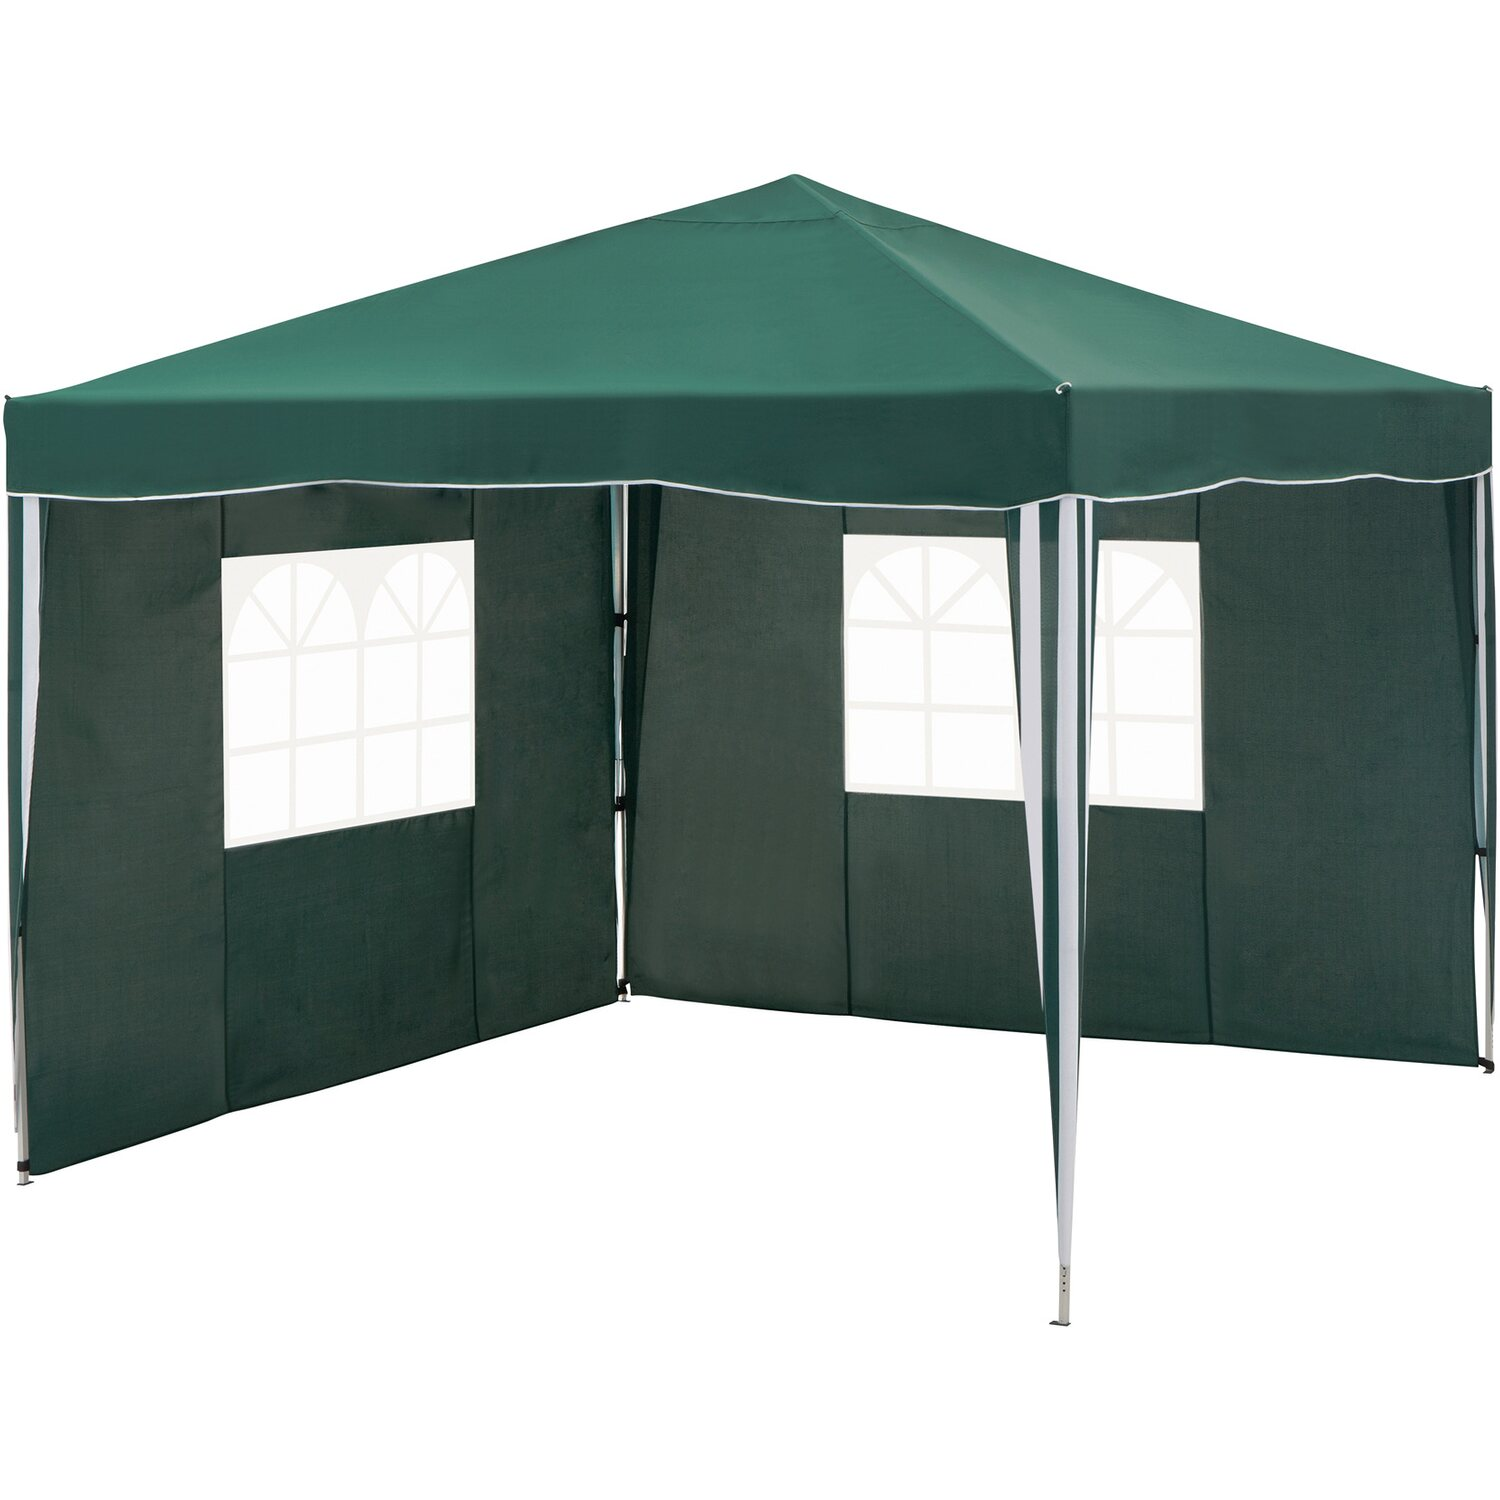 gazebo pieghevole in alluminio cmi verde 300 cm x 300 cm acquista da obi. Black Bedroom Furniture Sets. Home Design Ideas